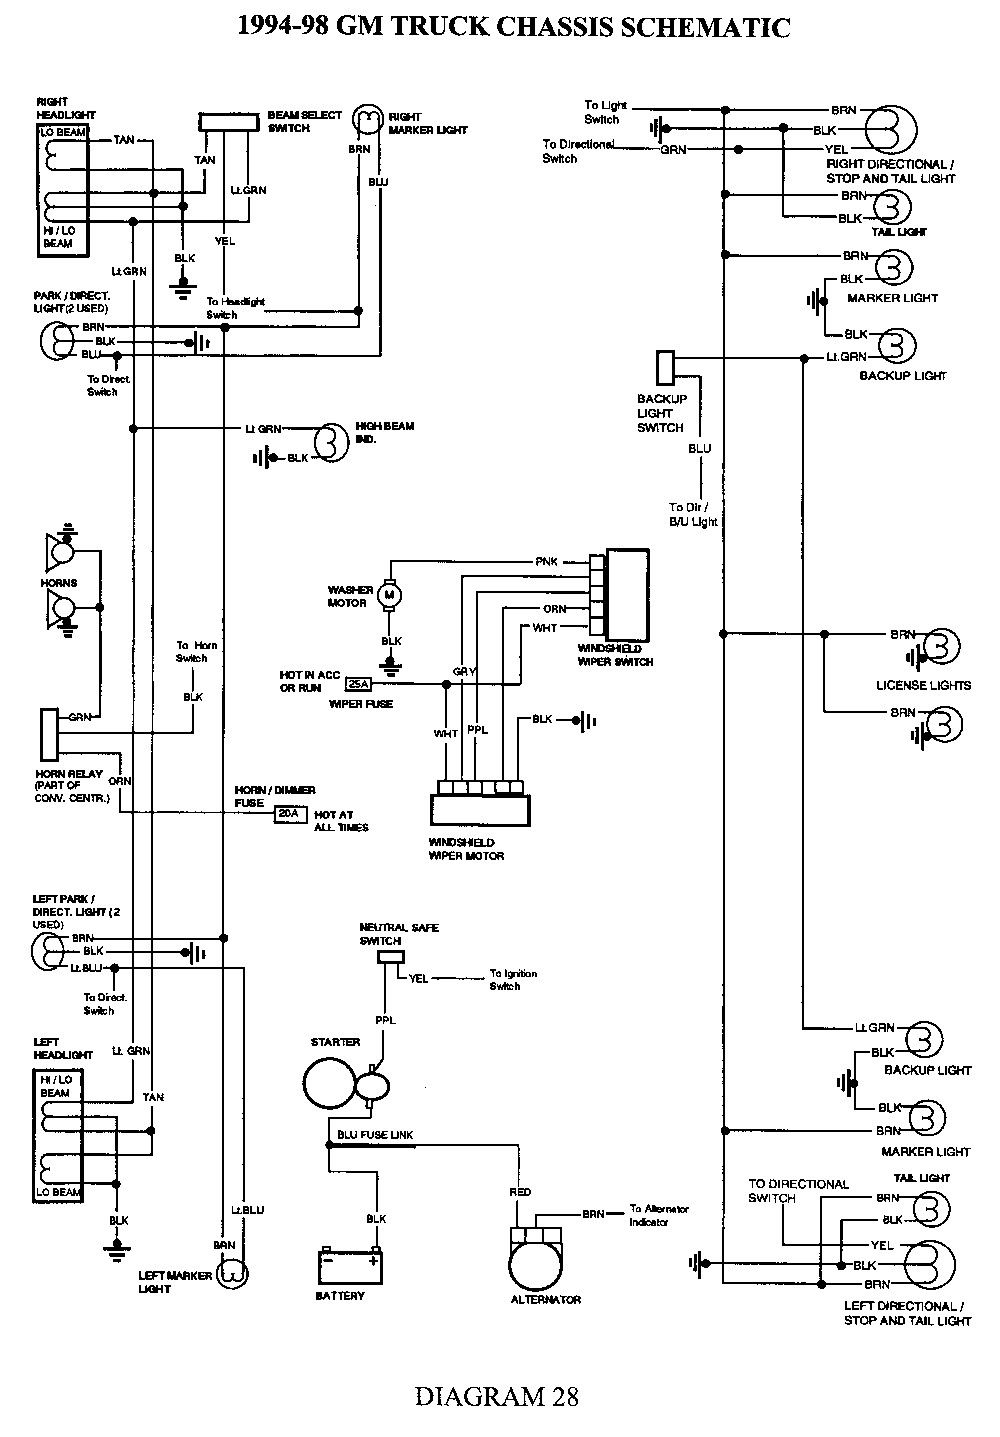 32 Wiring Diagram For Electric Brakes Chevy silverado